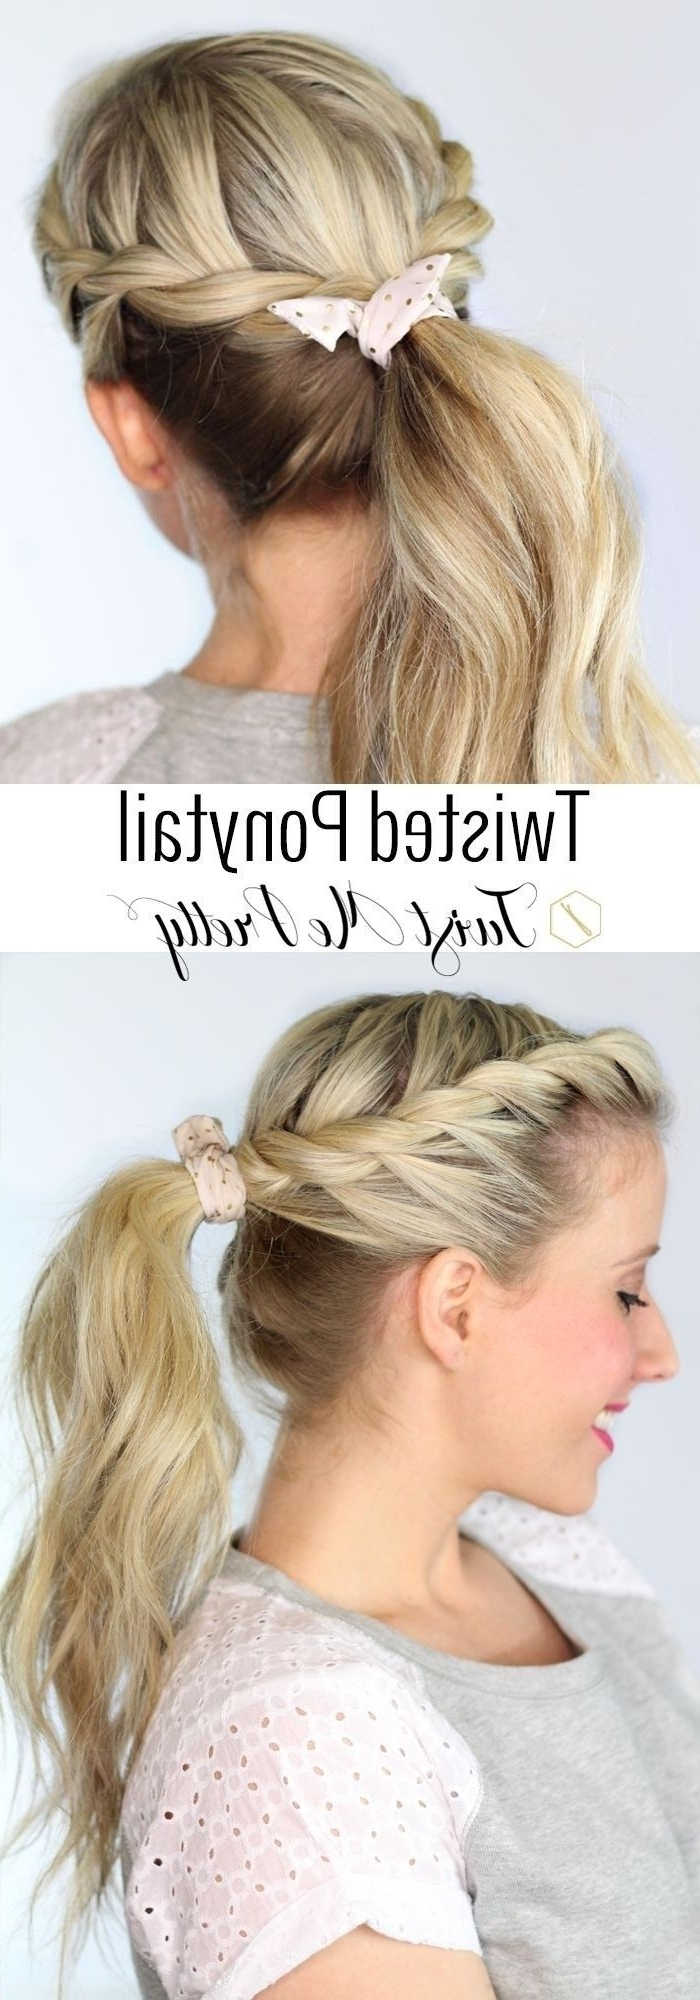 Newest Easy High Pony Hairstyles For Curly Hair Pertaining To 20 Ponytail Hairstyles: Discover Latest Ponytail Ideas Now (View 15 of 20)